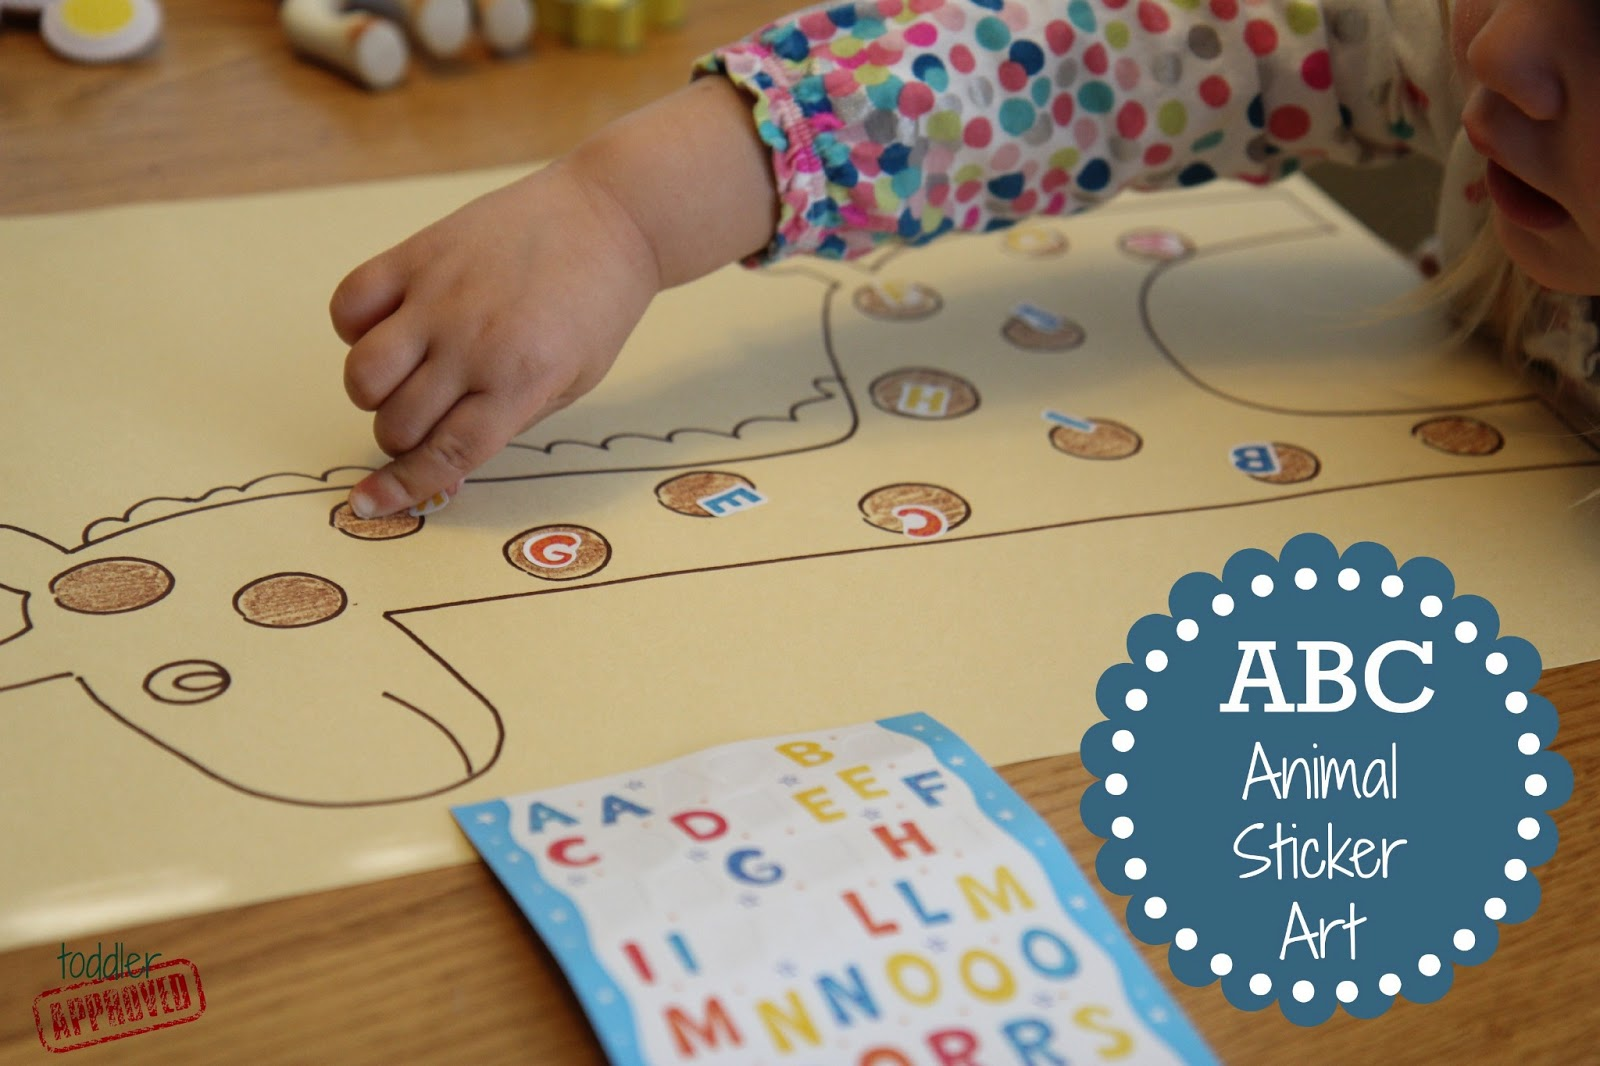 Arts and crafts for a 1 year old - Arts And Crafts For 1 Year Olds 2 Year Old Arts And Crafts Arts And